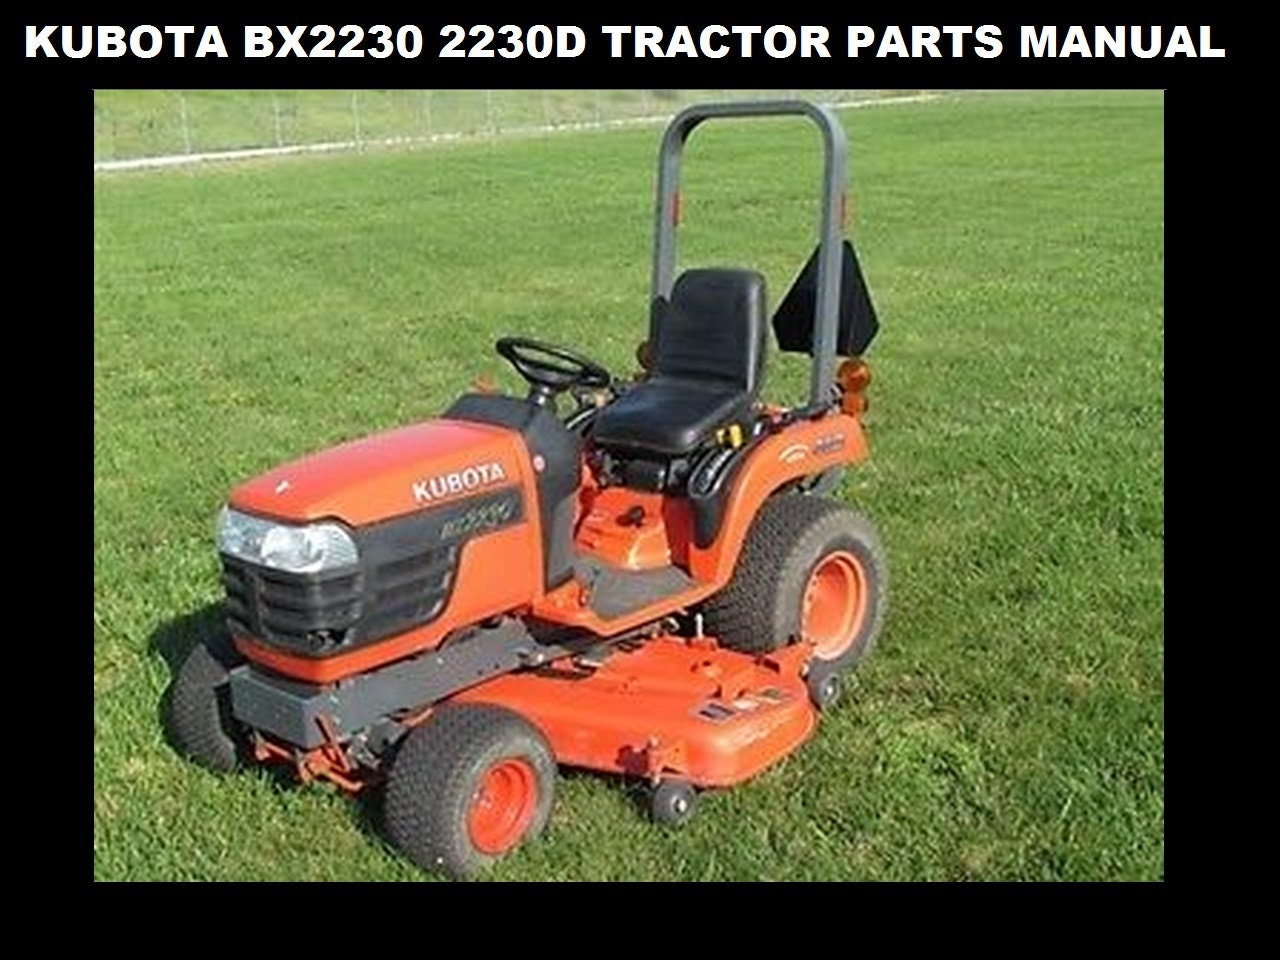 kubota bx 2230 bx 2230 d parts manual 260pg of bx2230d tractor exploded diagrams to aid in service and repair Kubota Service Manual Wiring Diagram